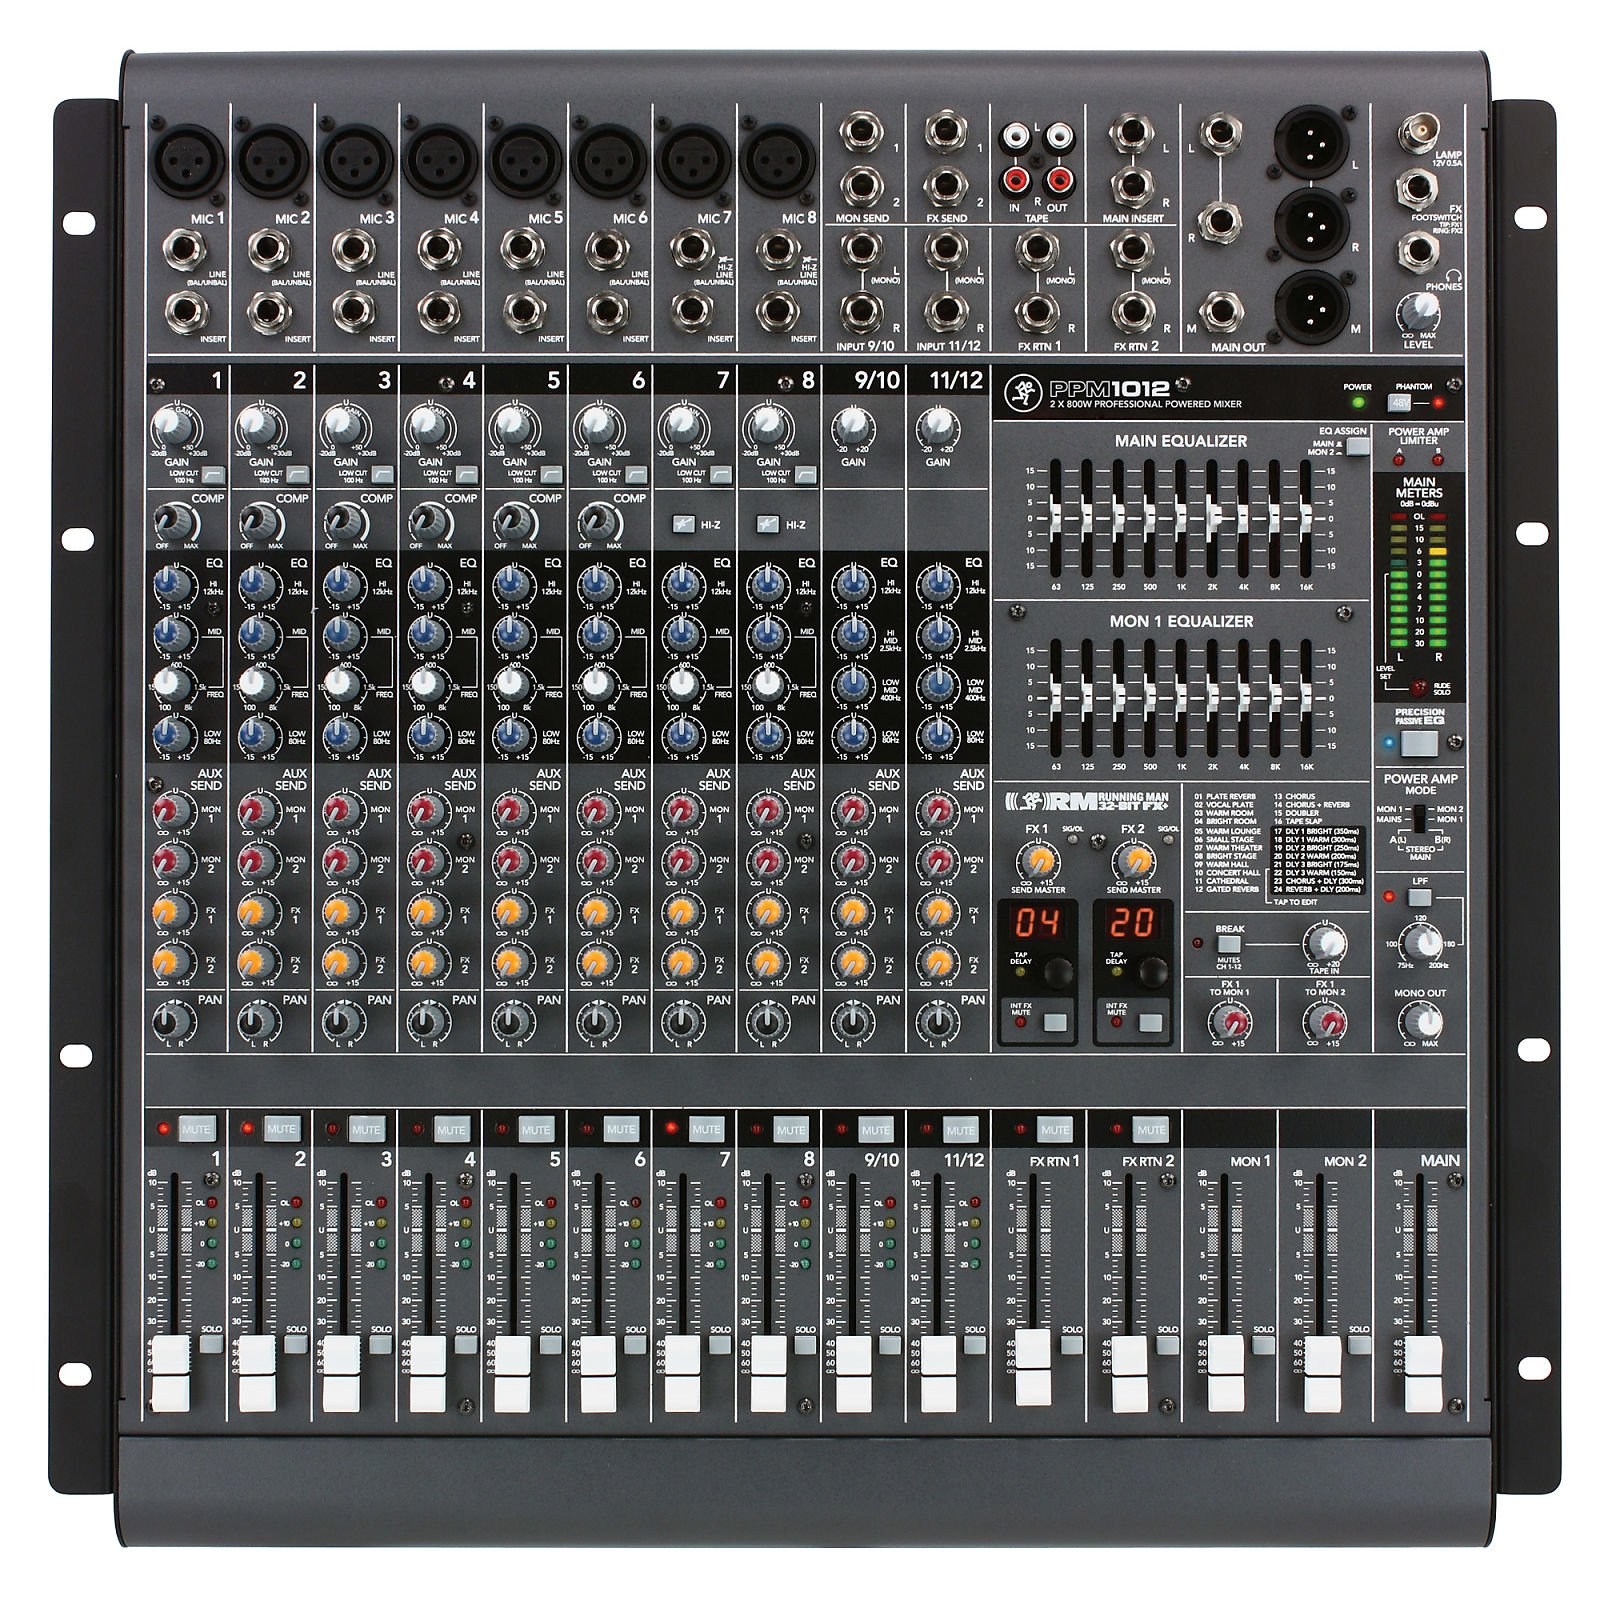 MACKIE PPM1012 12-CHANNEL 1600W POWERED MIXER W/EFFECTS